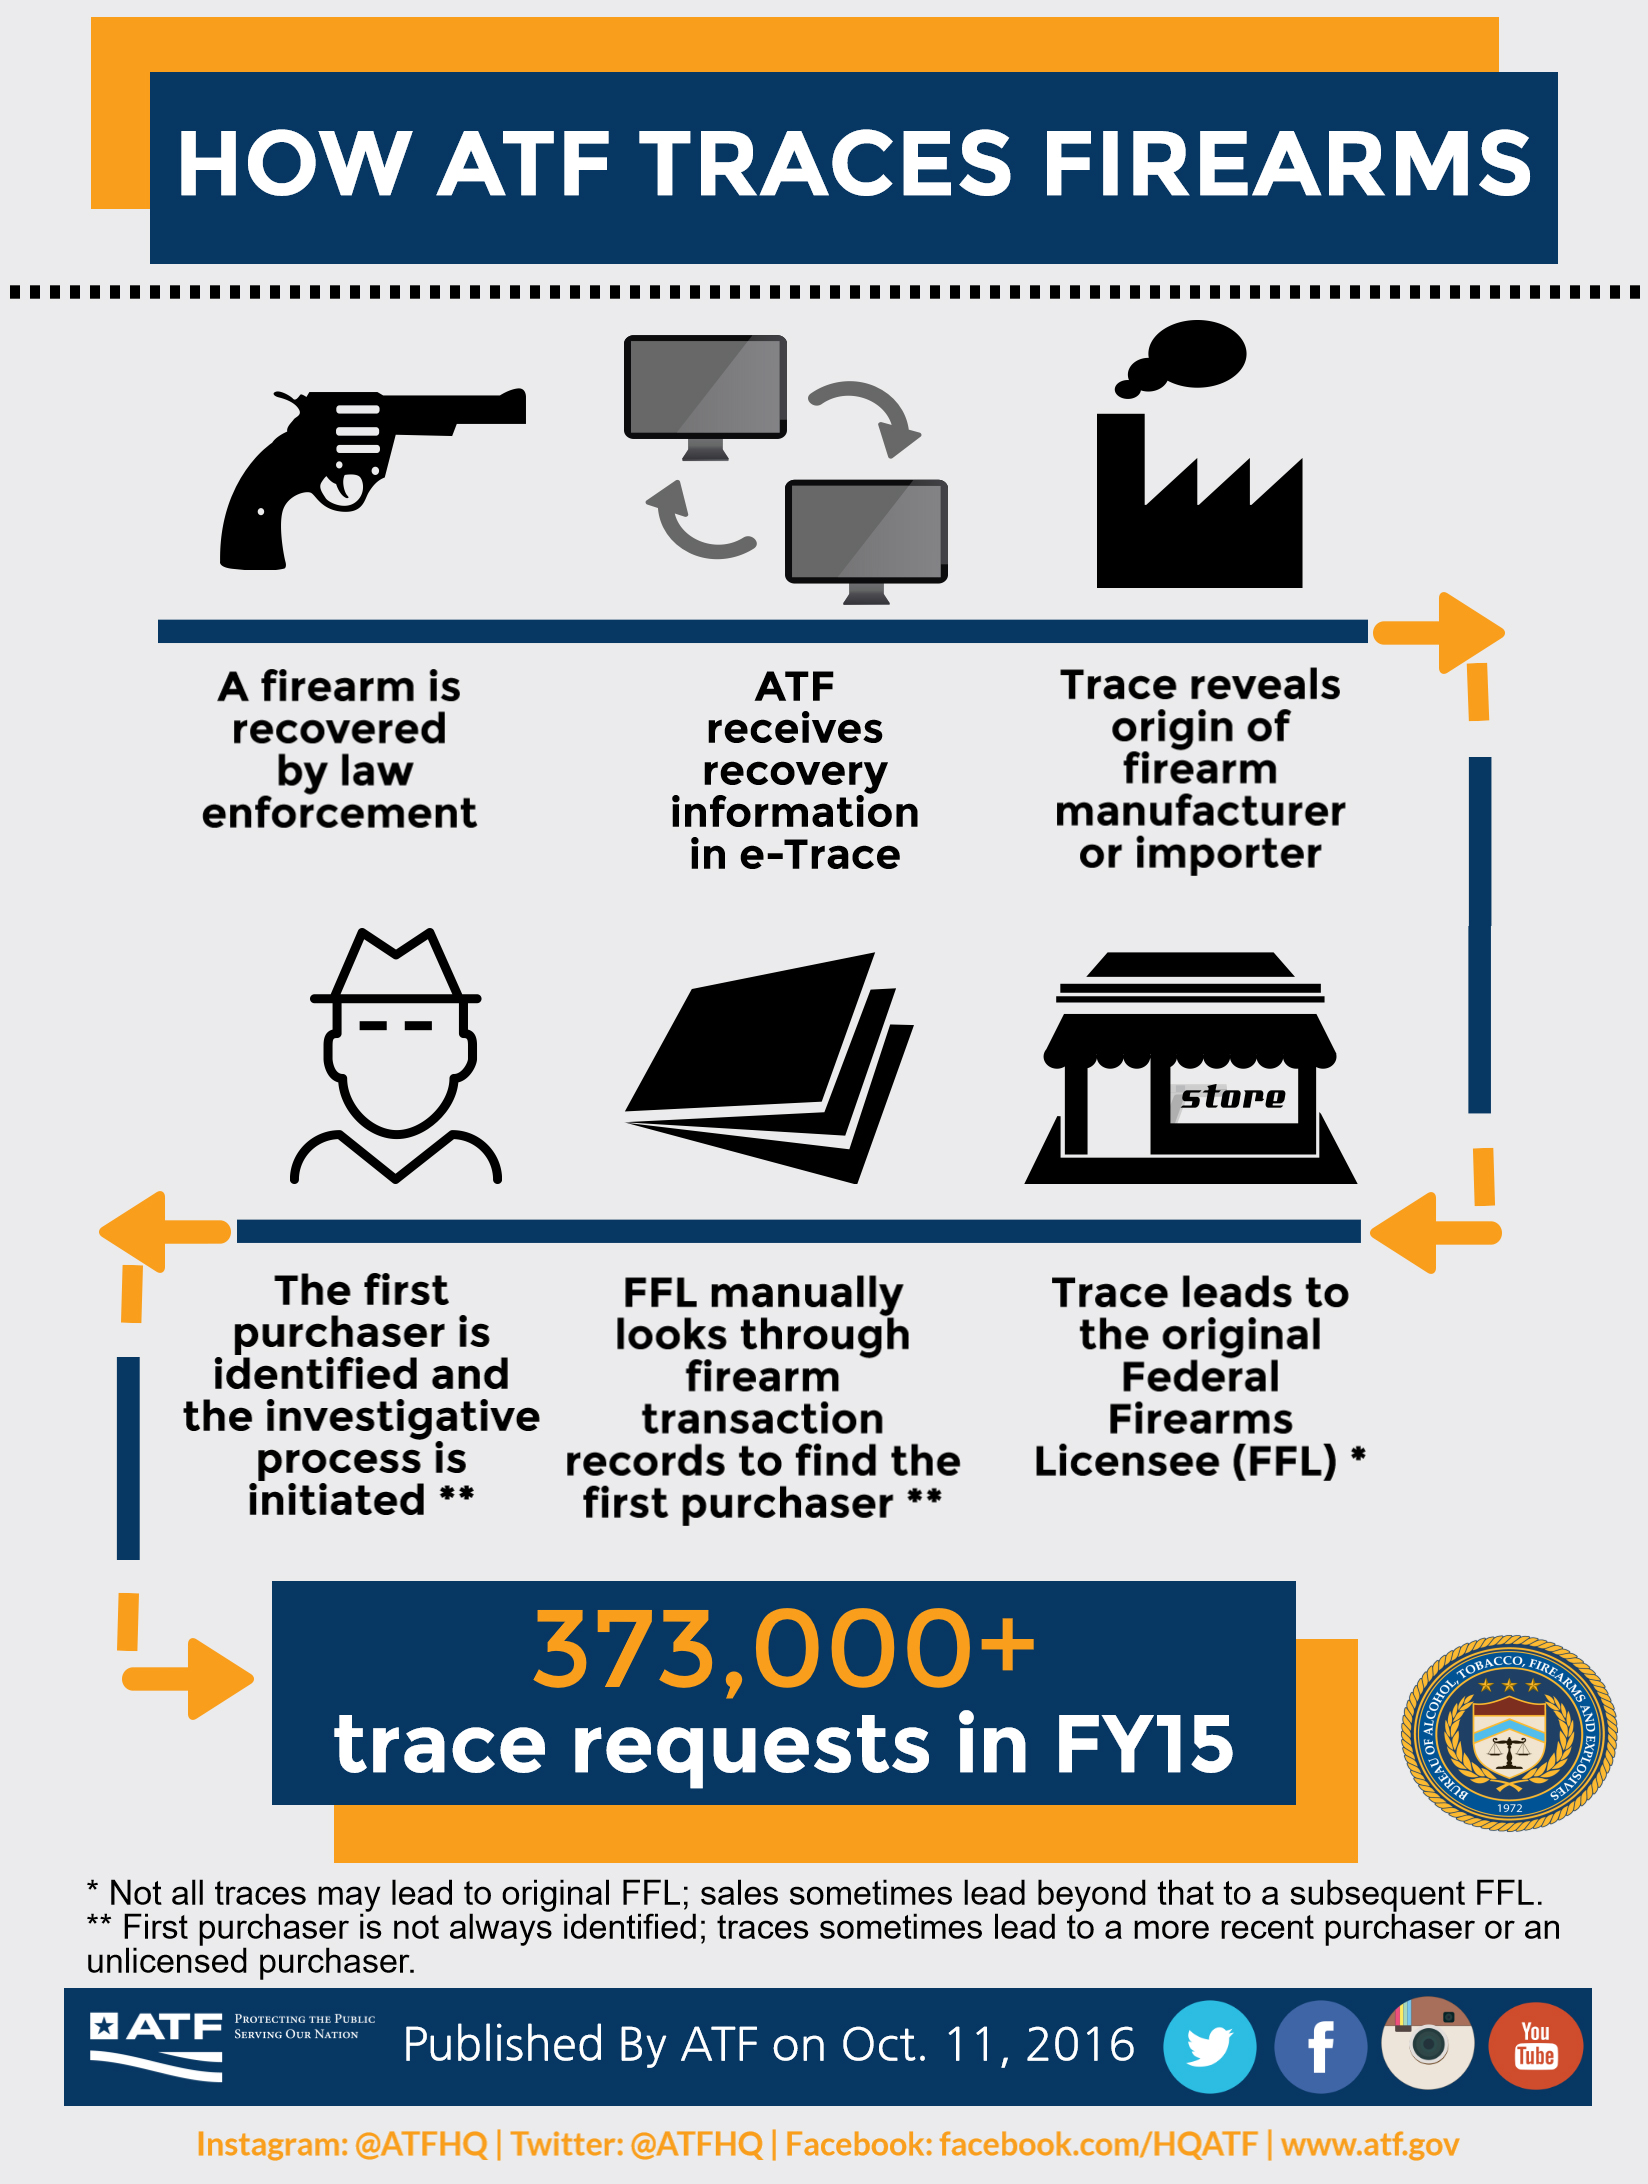 A firearm is recovered by law enforcement. ATF receives recovery information in e-Trace. Trace reveals origin of firearm manufacturer or importer. Trace leads to the original Federal Firearms Licensee (FFL).